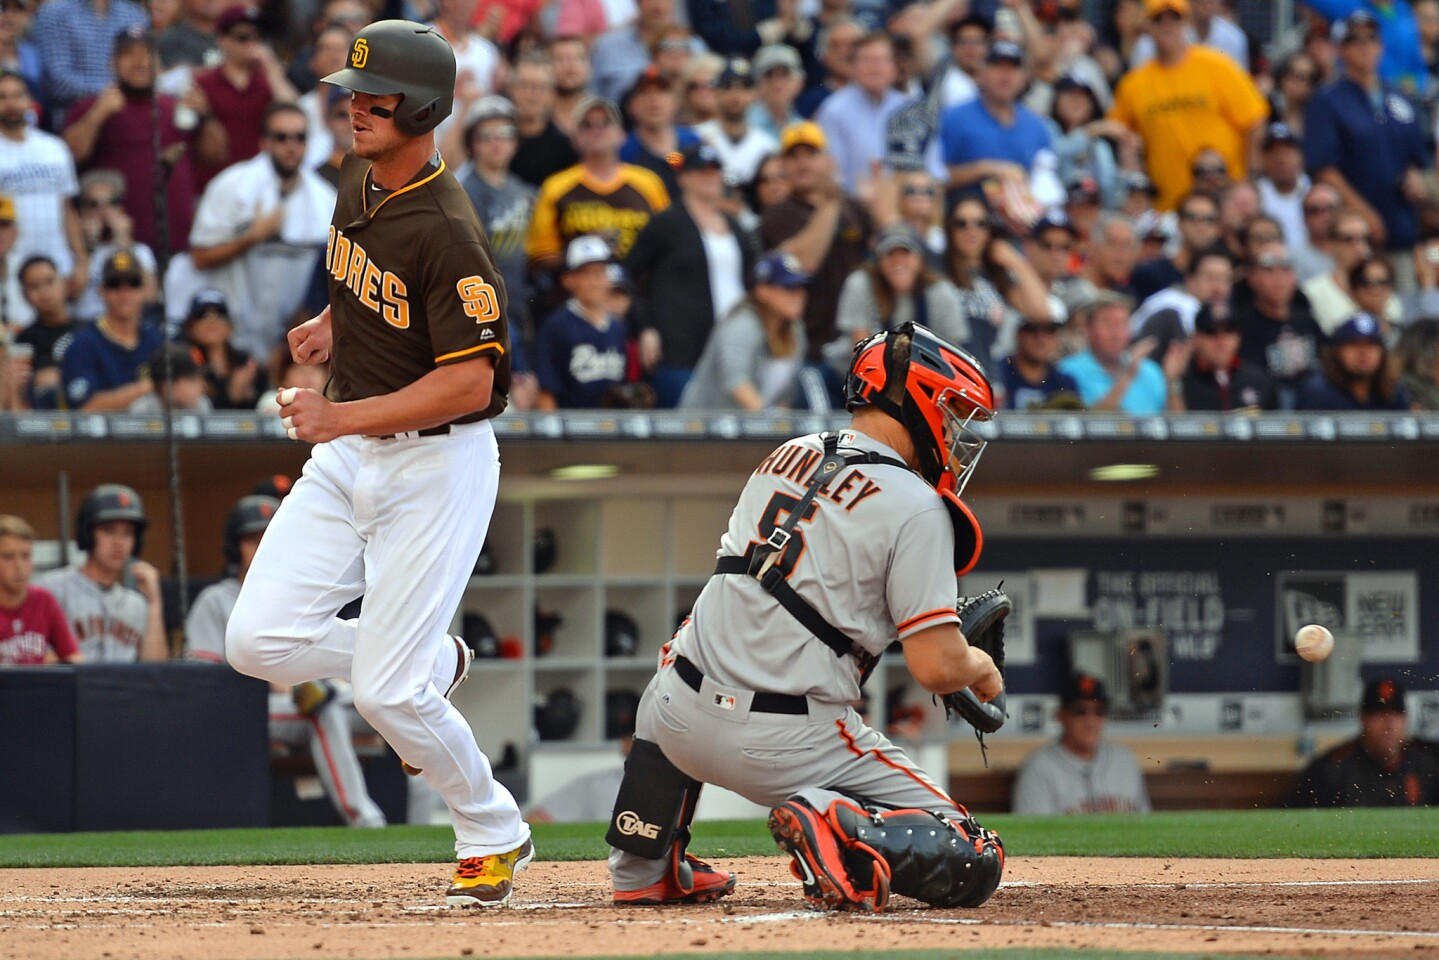 Apr 7, 2017; San Diego, CA, USA; San Diego Padres first baseman Wil Myers (L) scores ahead of the throw to San Francisco Giants catcher Nick Hundley (5) during the third inning on a single by third baseman Yangervis Solarte (26) at Petco Park. Mandatory Credit: Jake Roth-USA TODAY Sports ** Usable by SD ONLY **